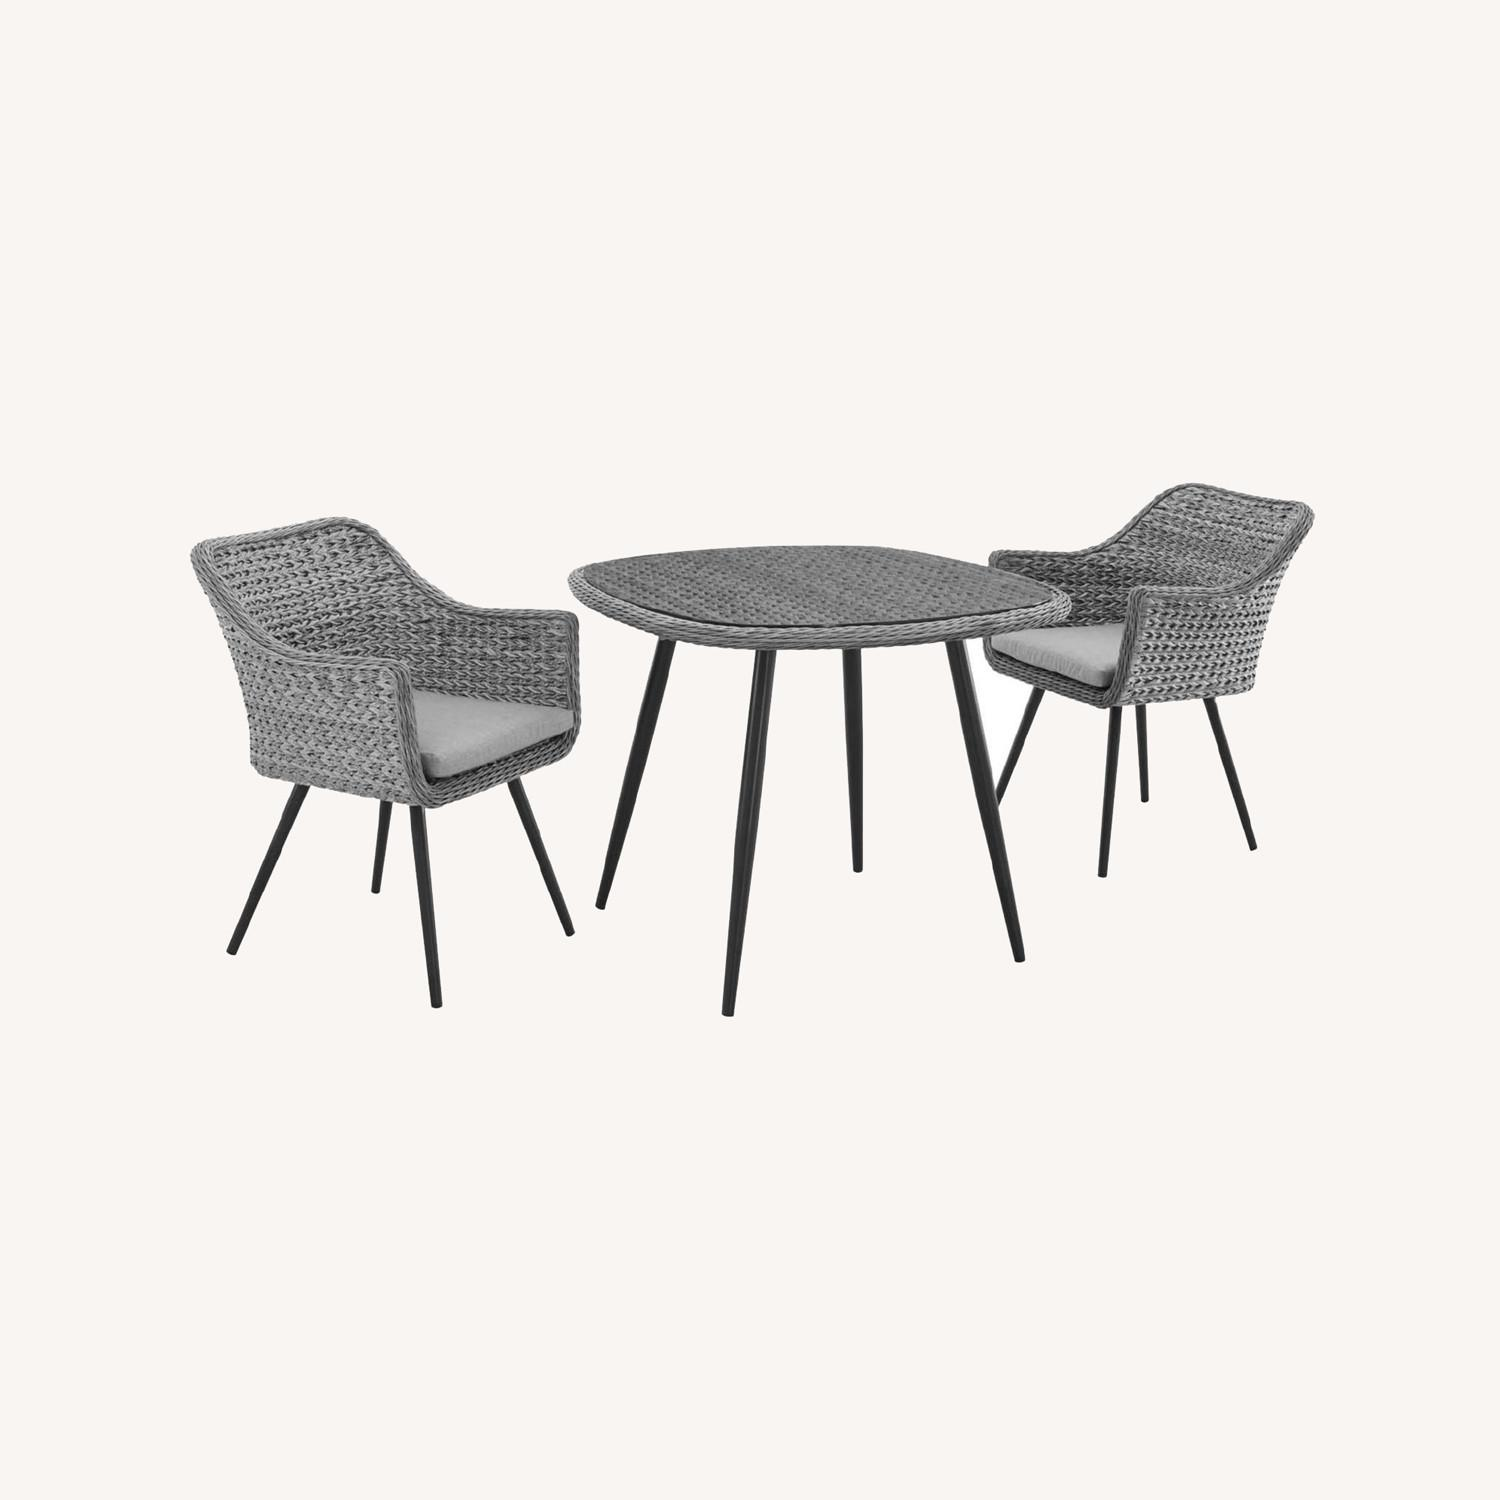 Modern 3-Piece Dining Set In Gray Rattan Weave - image-8